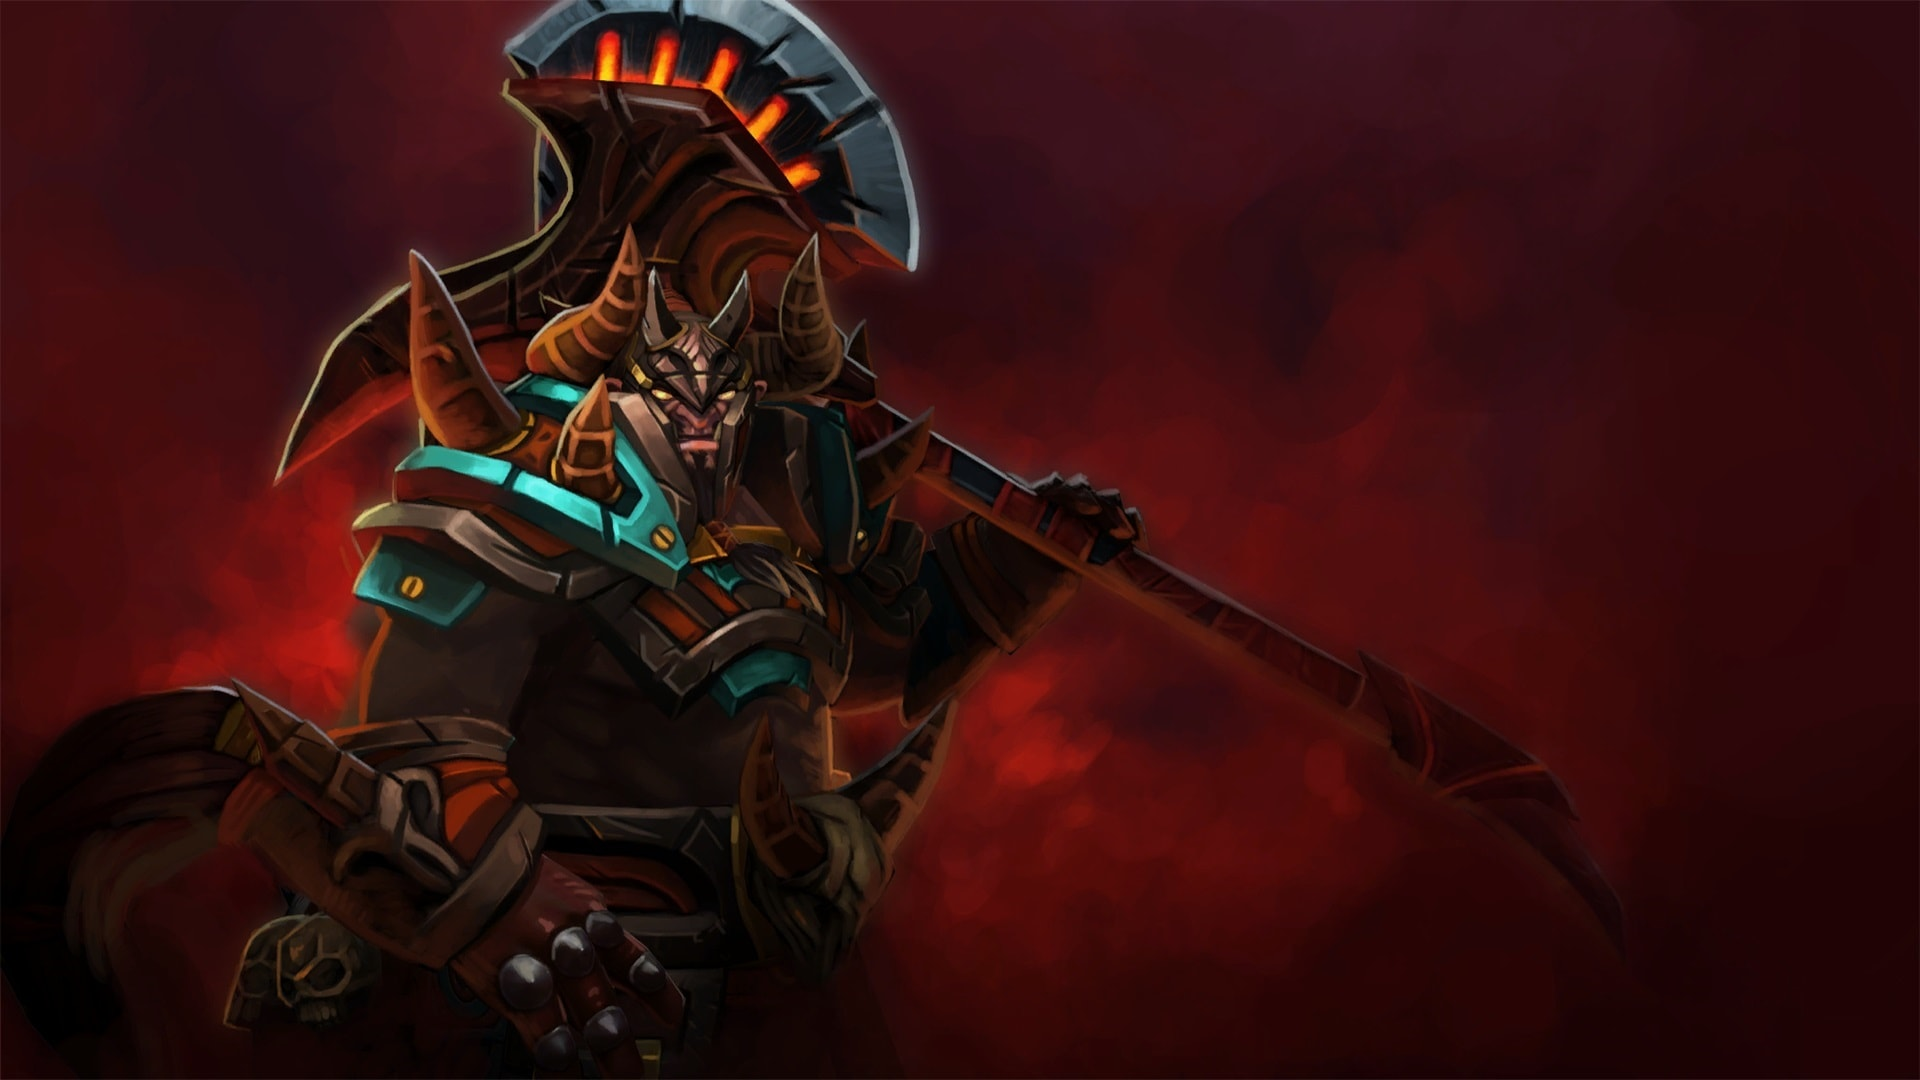 Dota2 : Centaur Warrunner full hd wallpapers